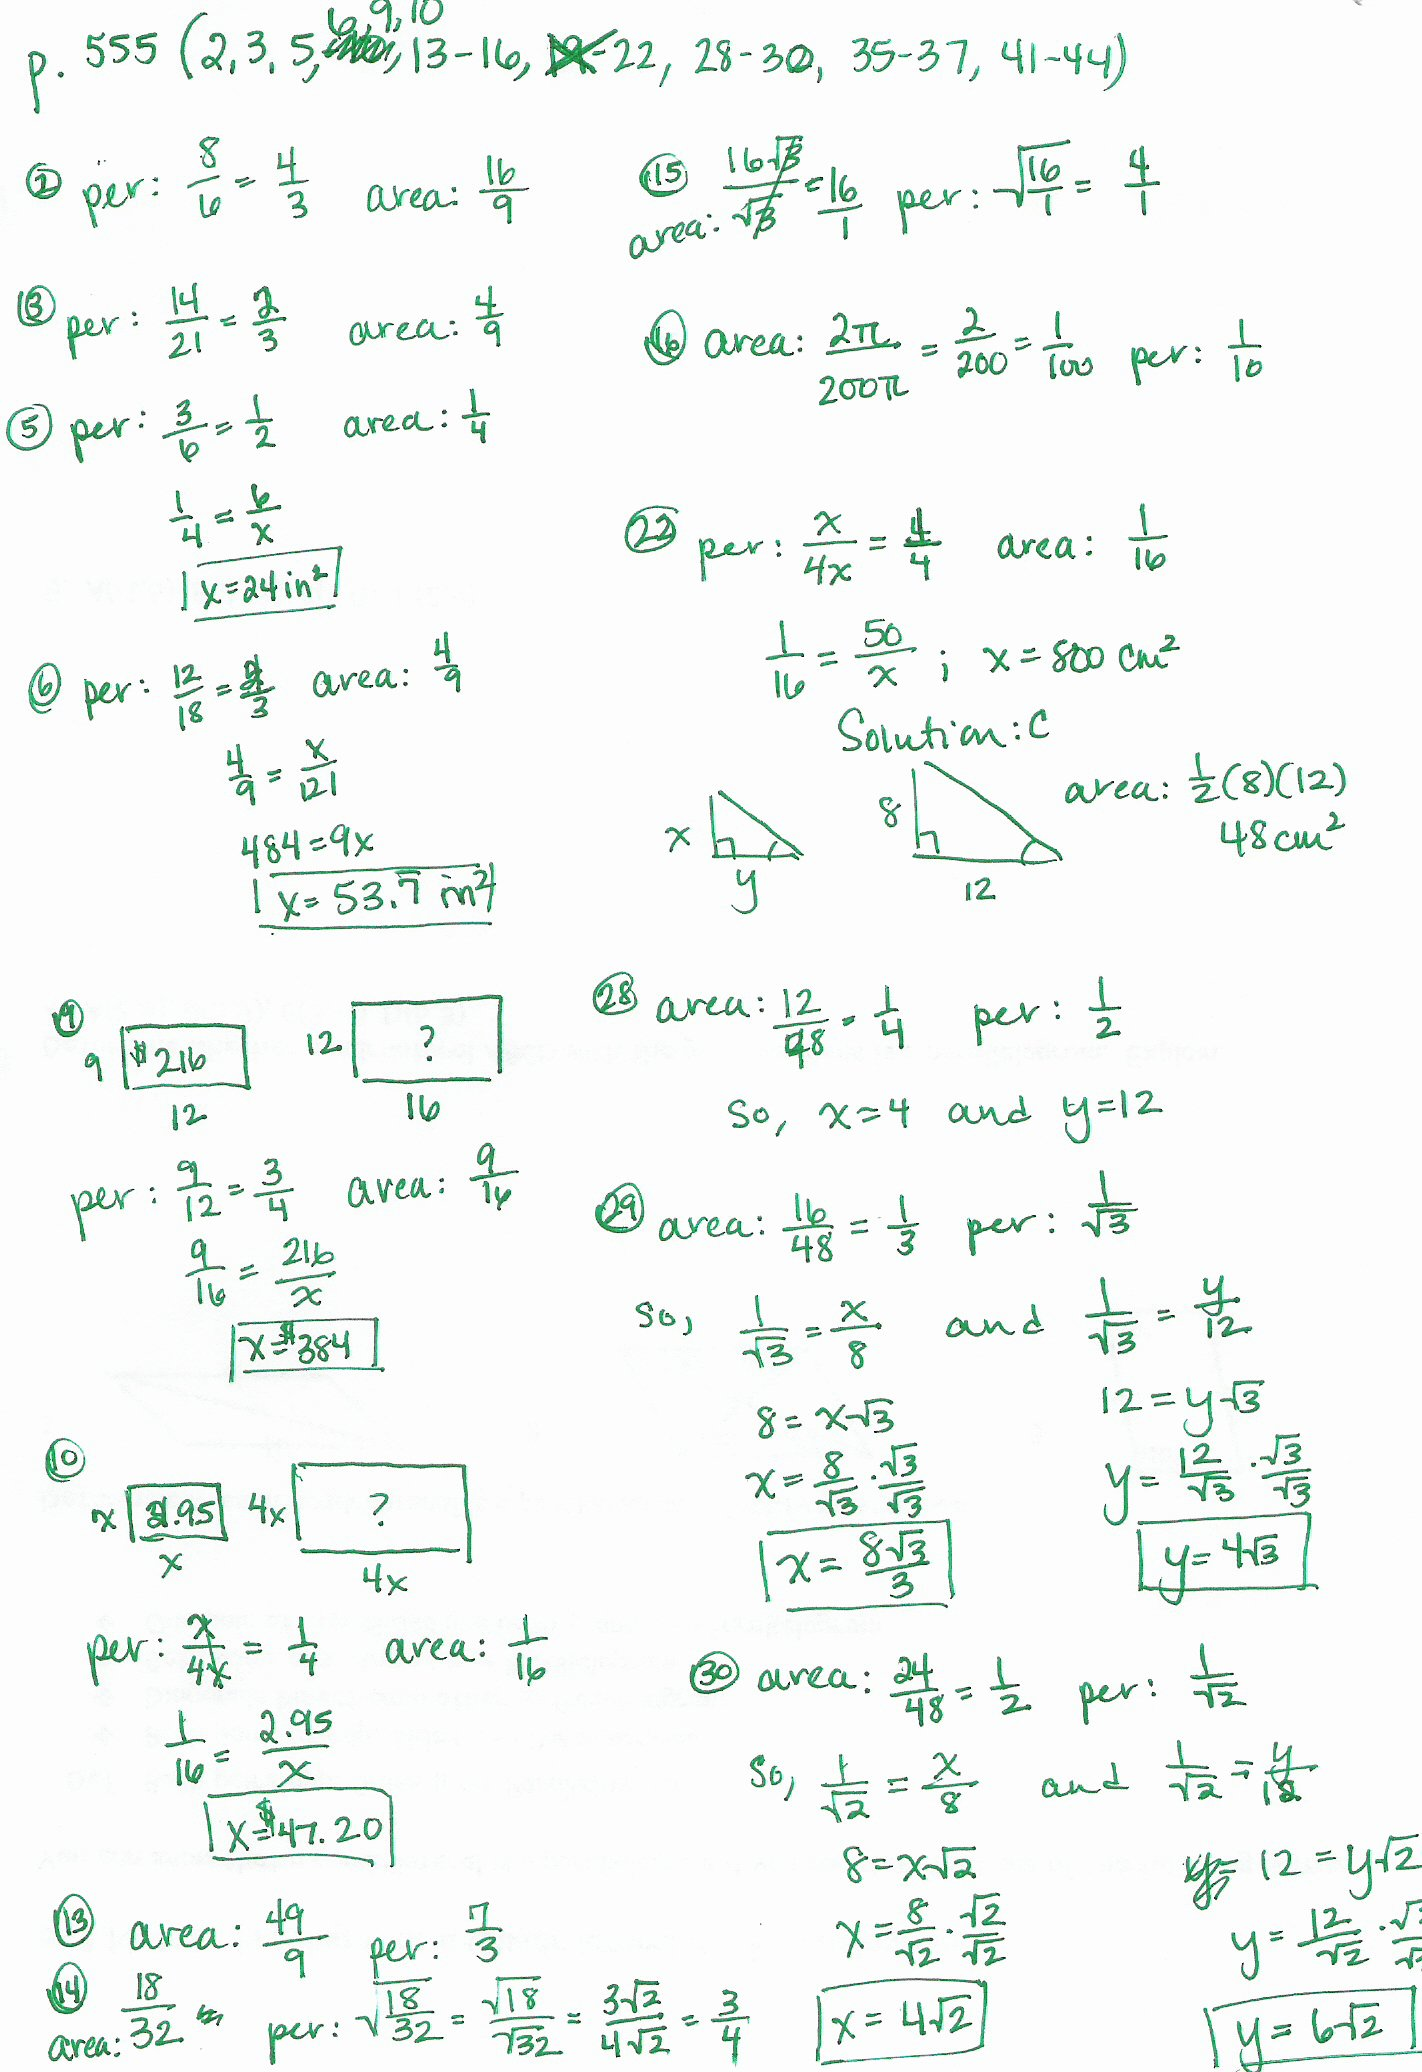 Solving Polynomial Equations Worksheet Answers New 5 3 solving Polynomial Equations Worksheet Answers form G